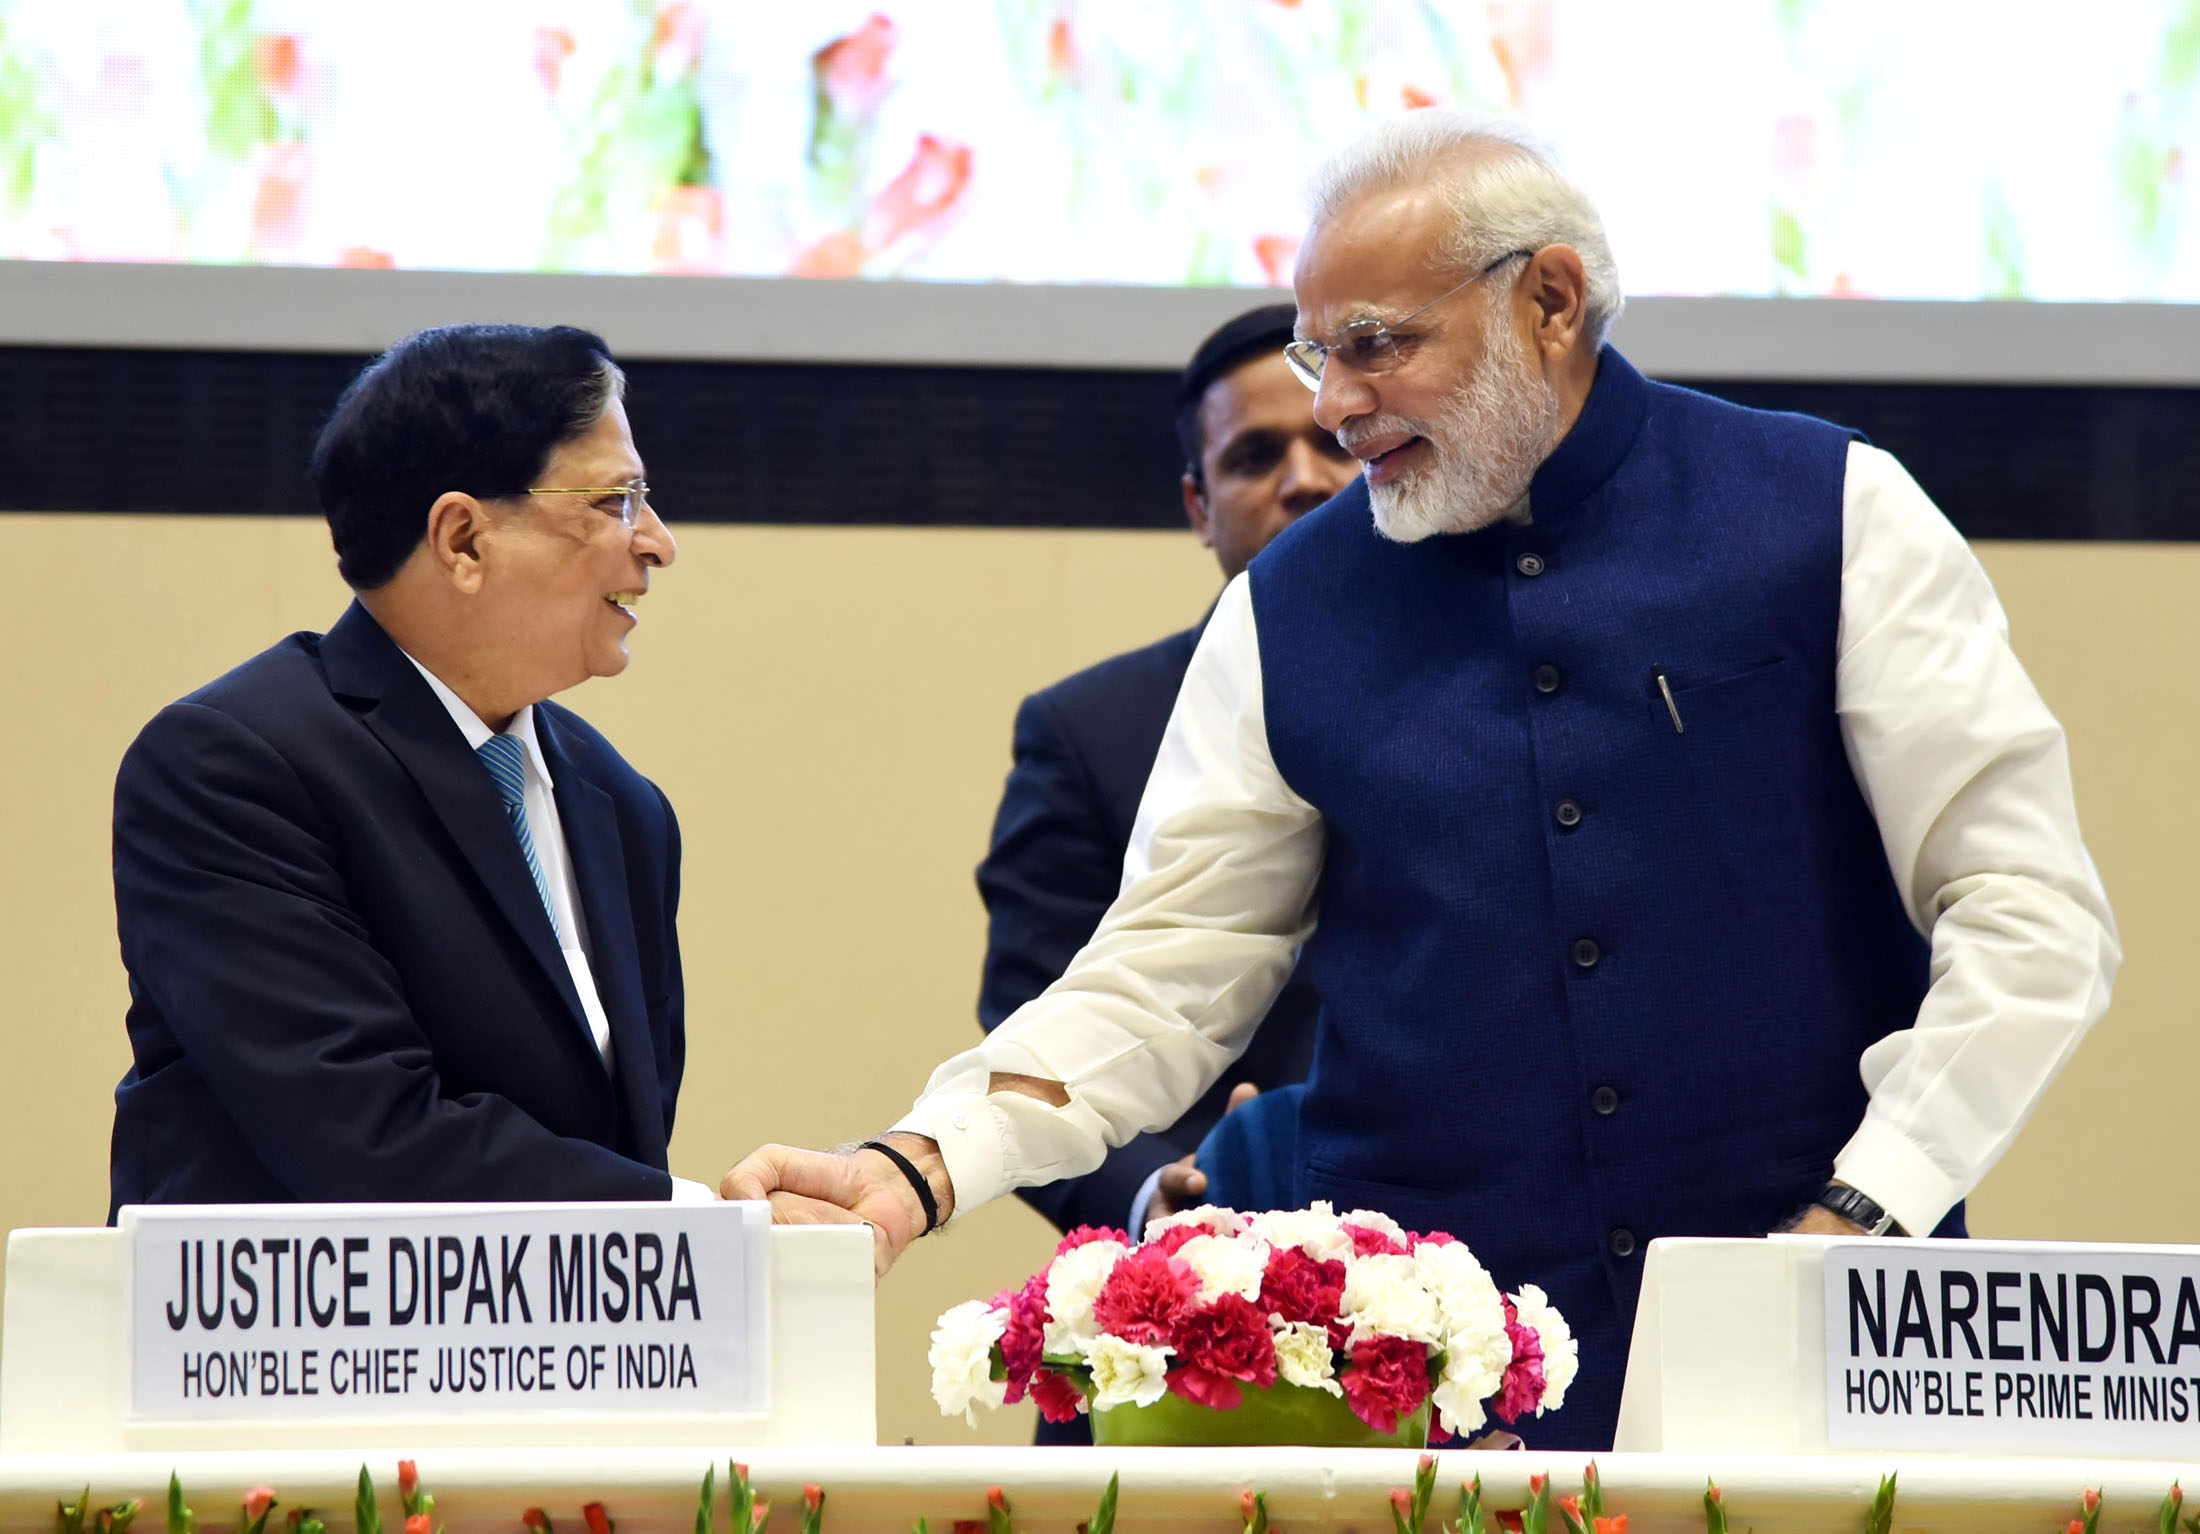 The Prime Minister, Shri Narendra Modi with the Chief Justice of India, Justice Shri Dipak Misra at the valedictory function of the National Law Day celebrations, in New Delhi on November 26, 2017.